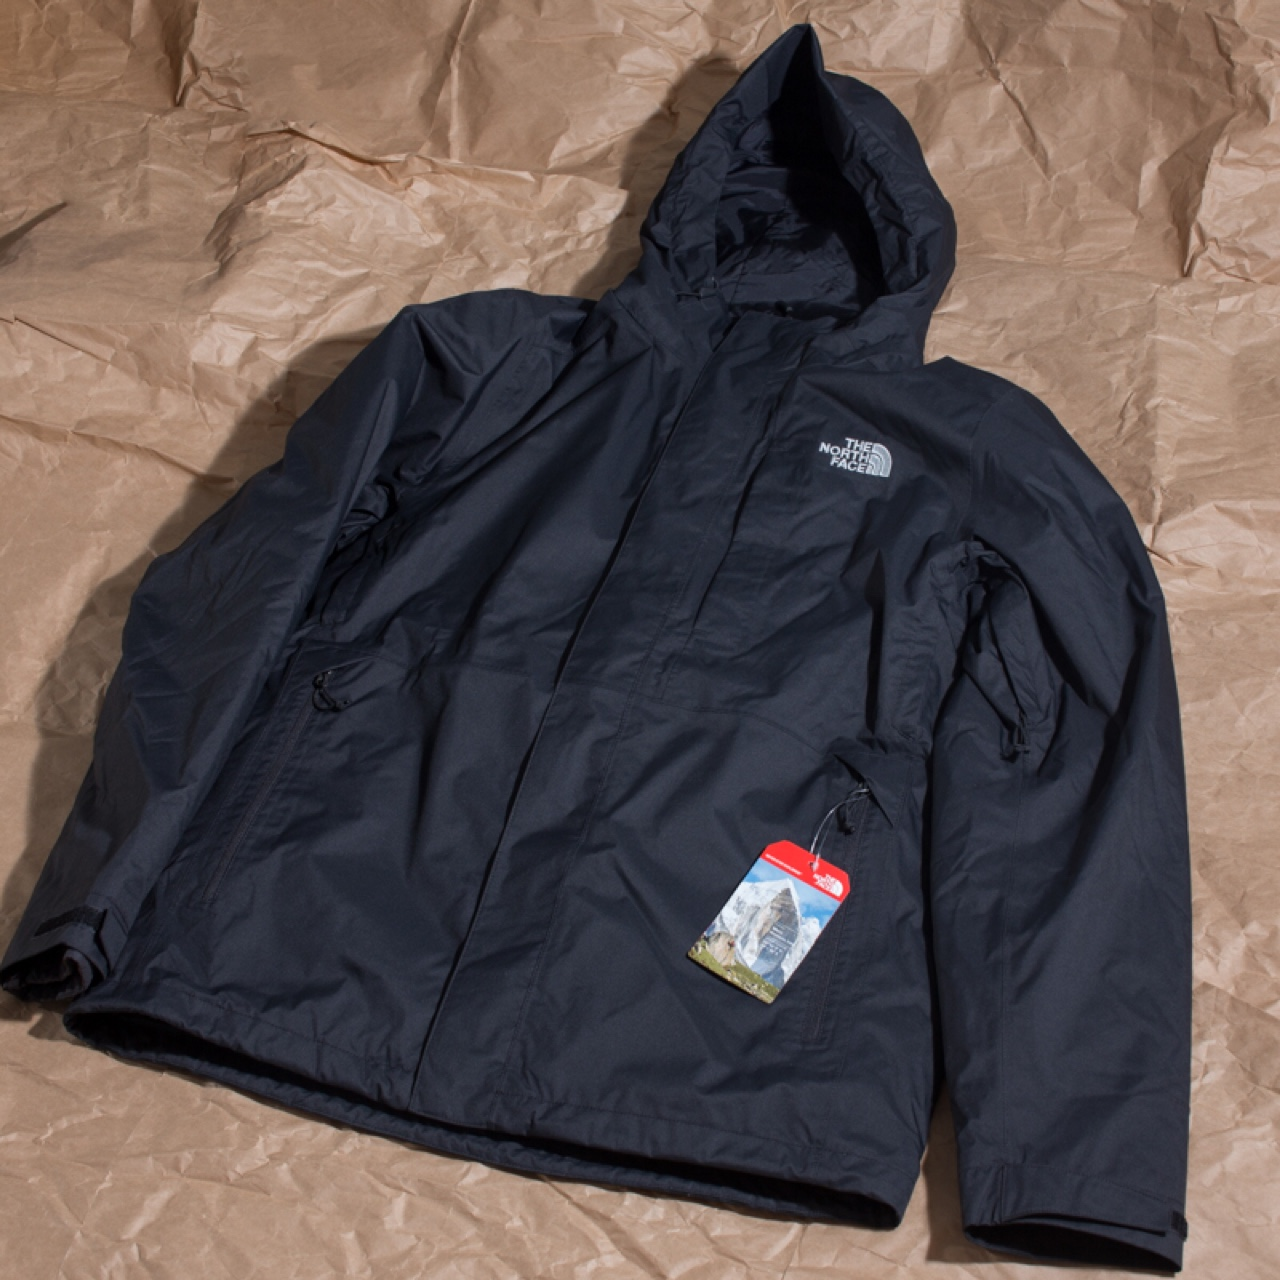 226a733fb The North Face Men's Altier Down Triclimate Jacket... - Depop